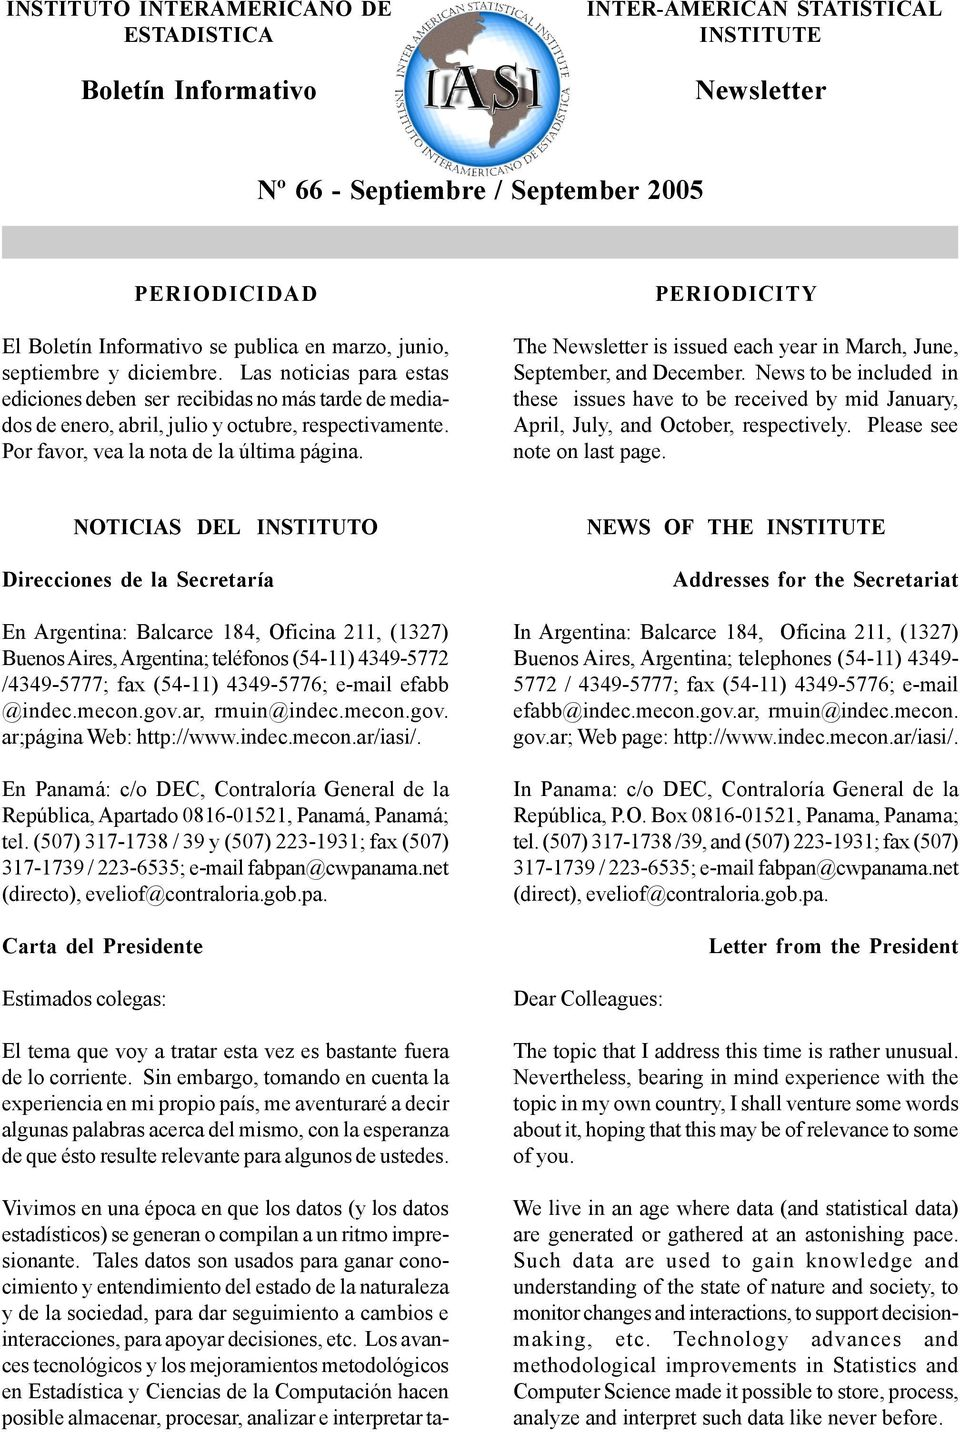 Por favor, vea la nota de la última página. PERIODICITY The Newsletter is issued each year in March, June, September, and December.